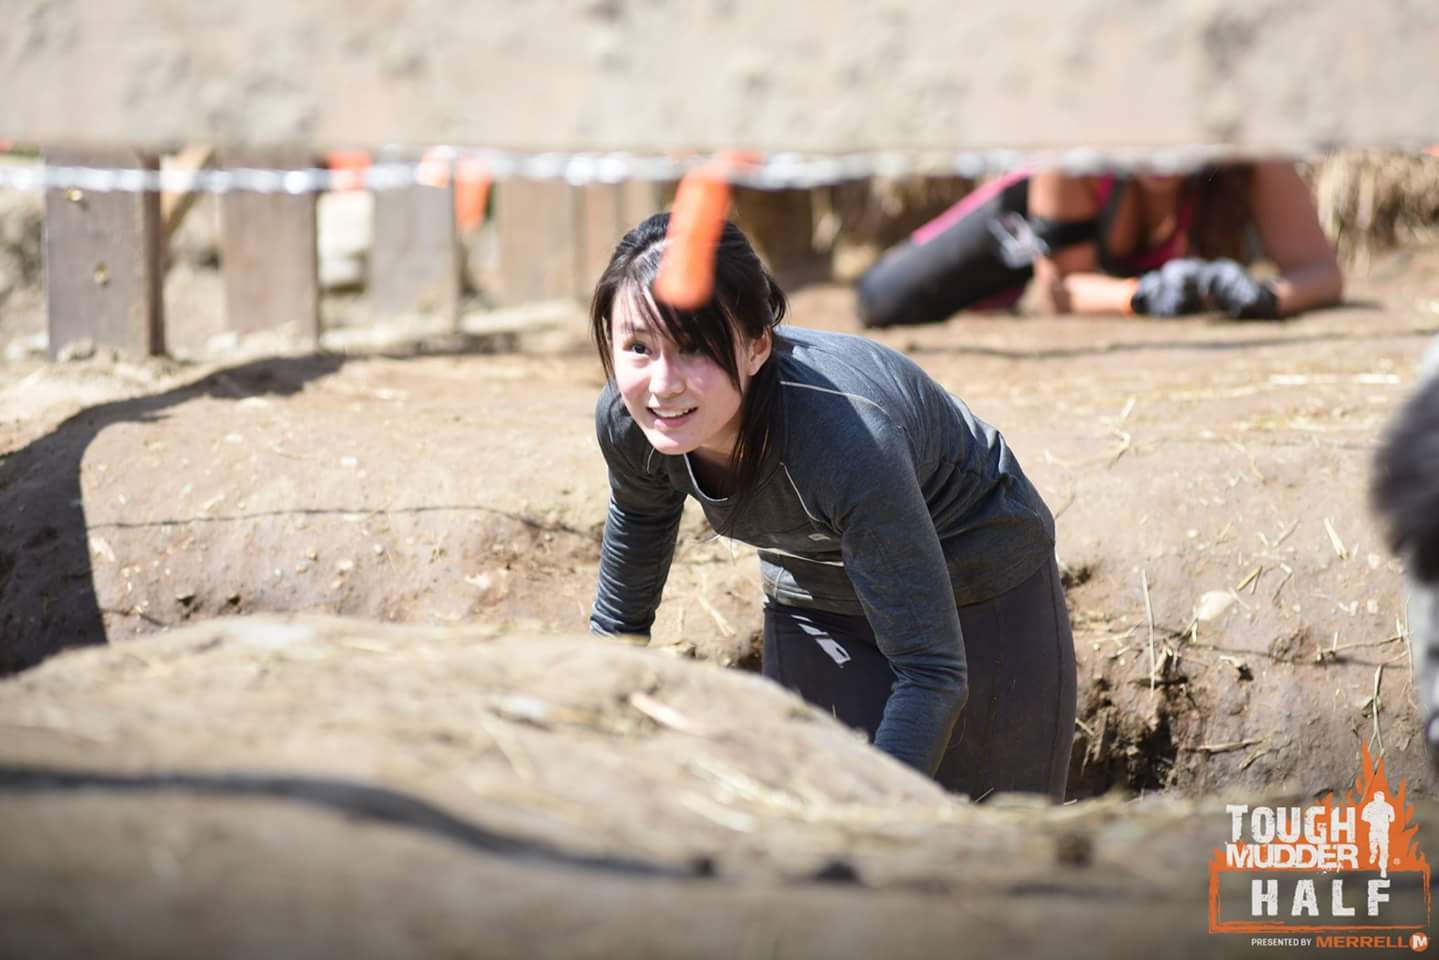 Vivian Tough Mudder